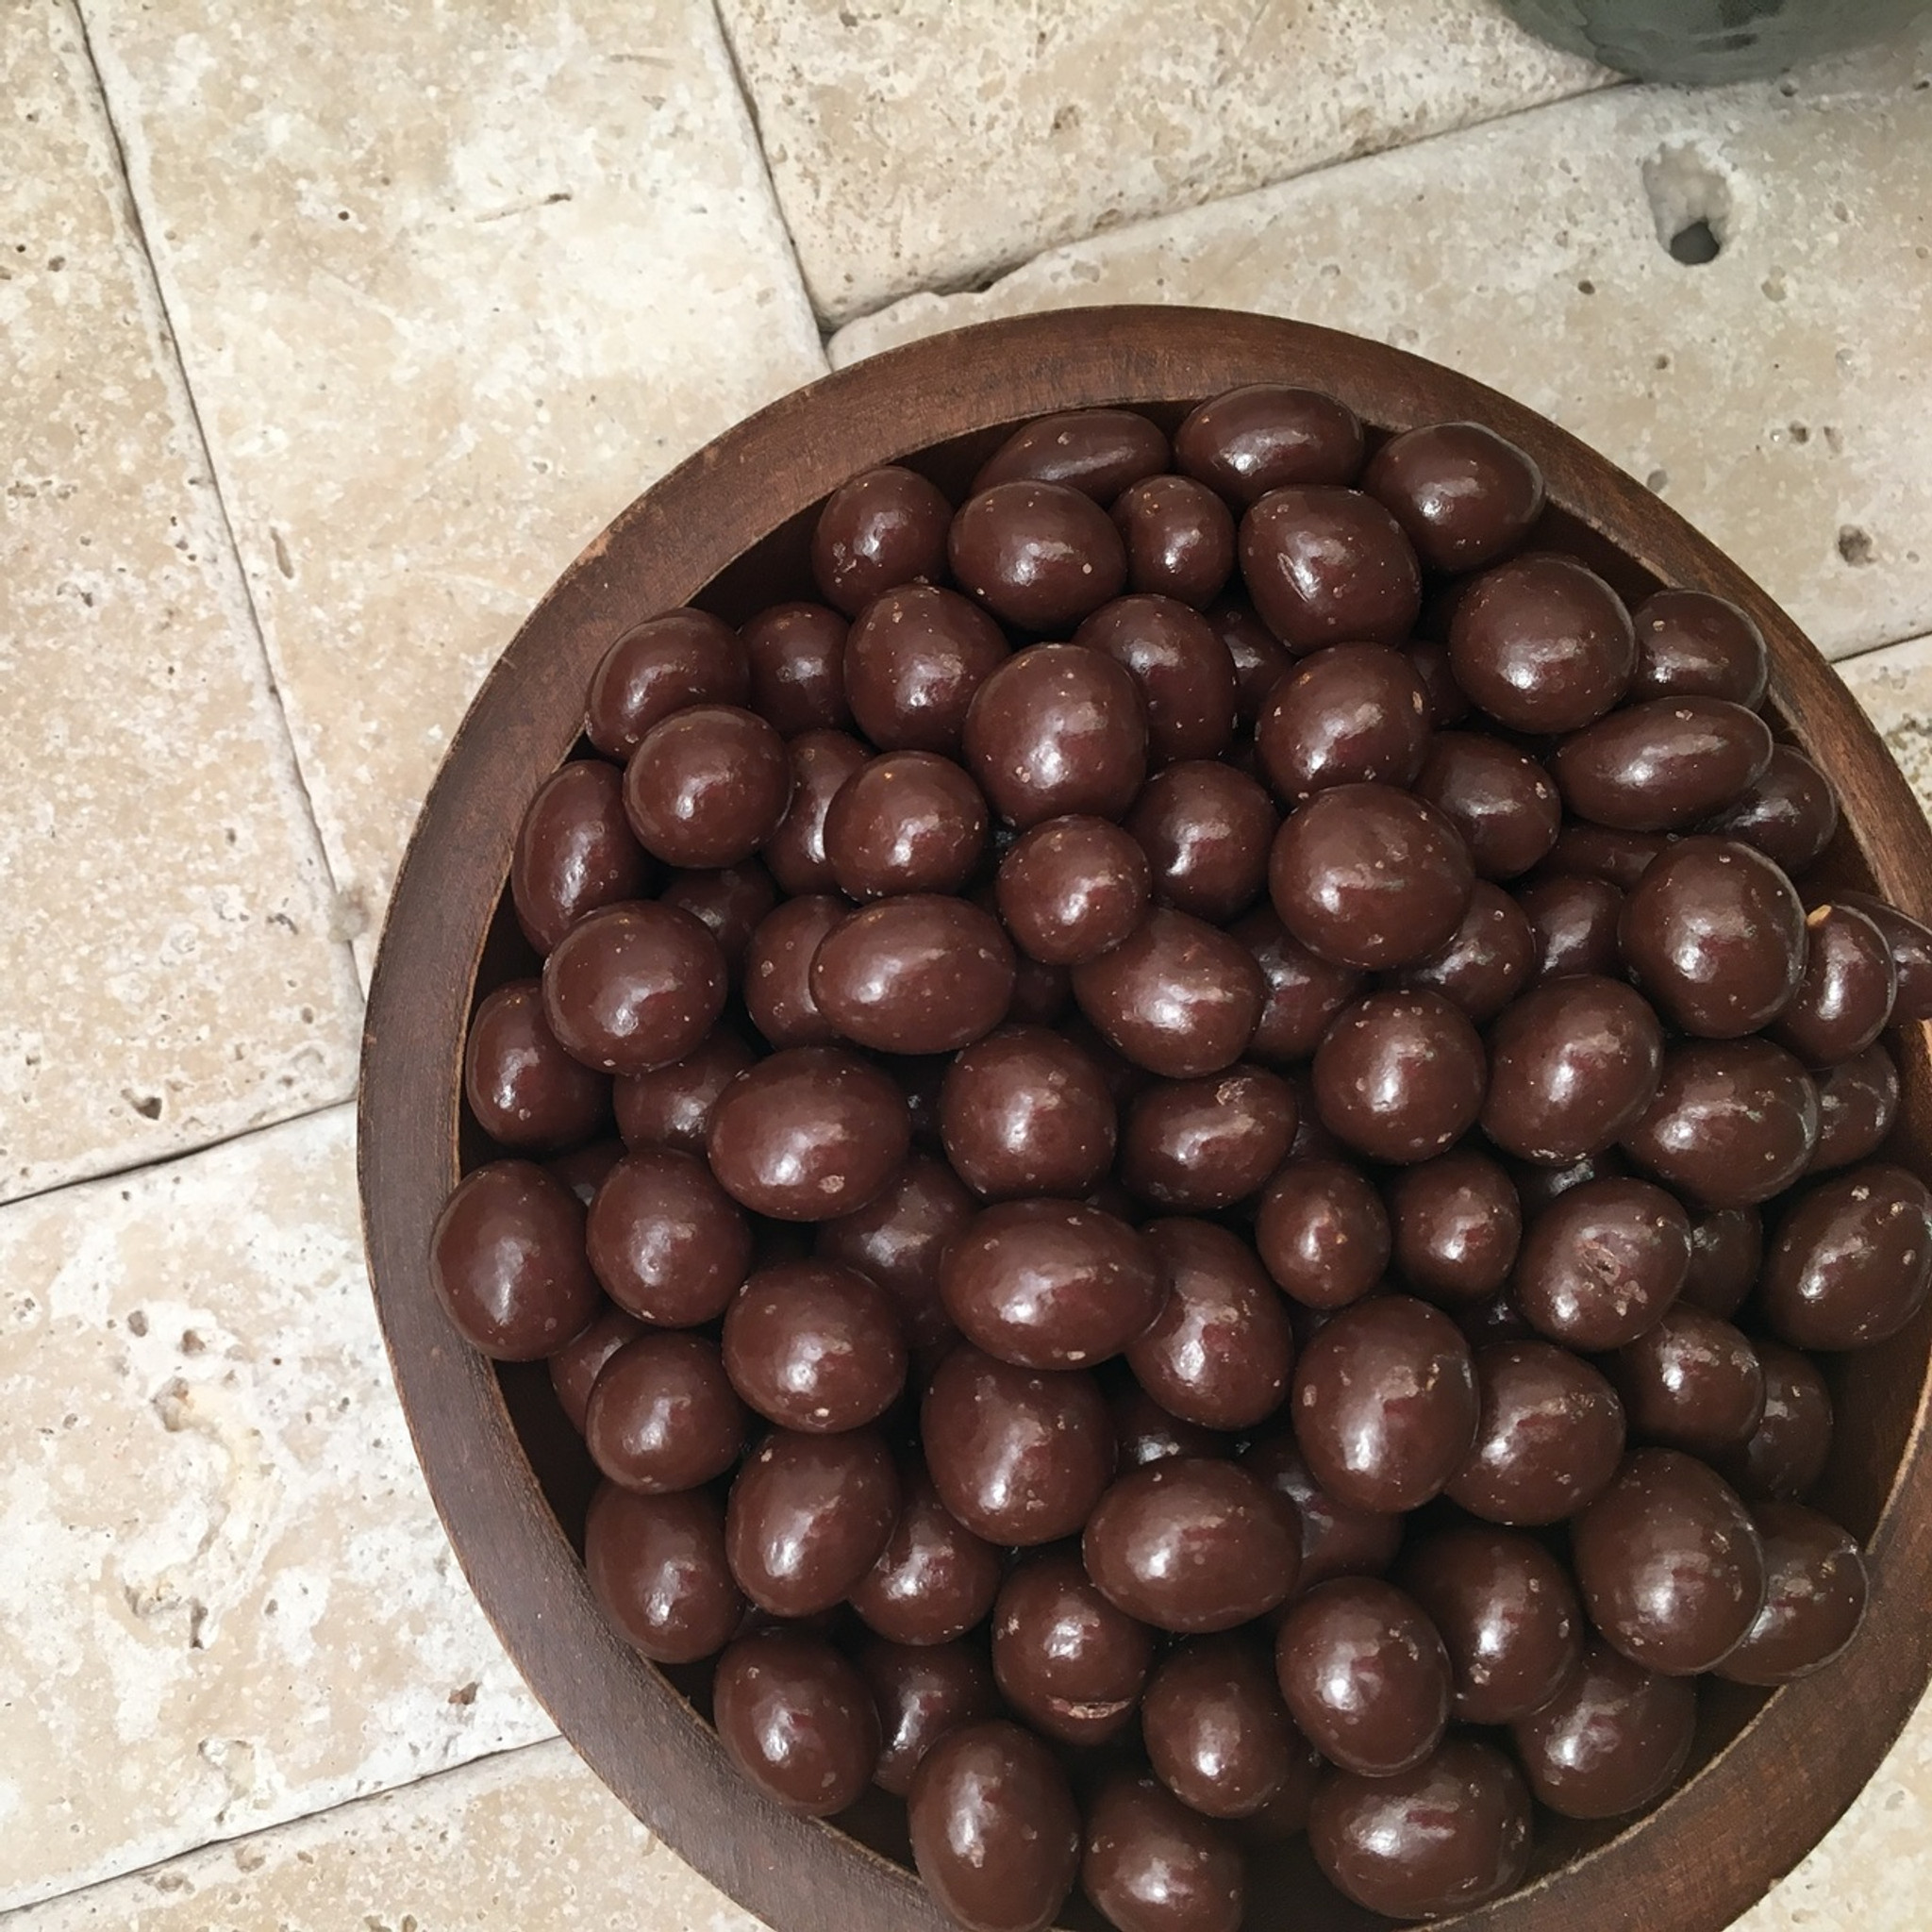 Chocolate Coated Peanuts Dairy Free (Bulk, by the lb.)